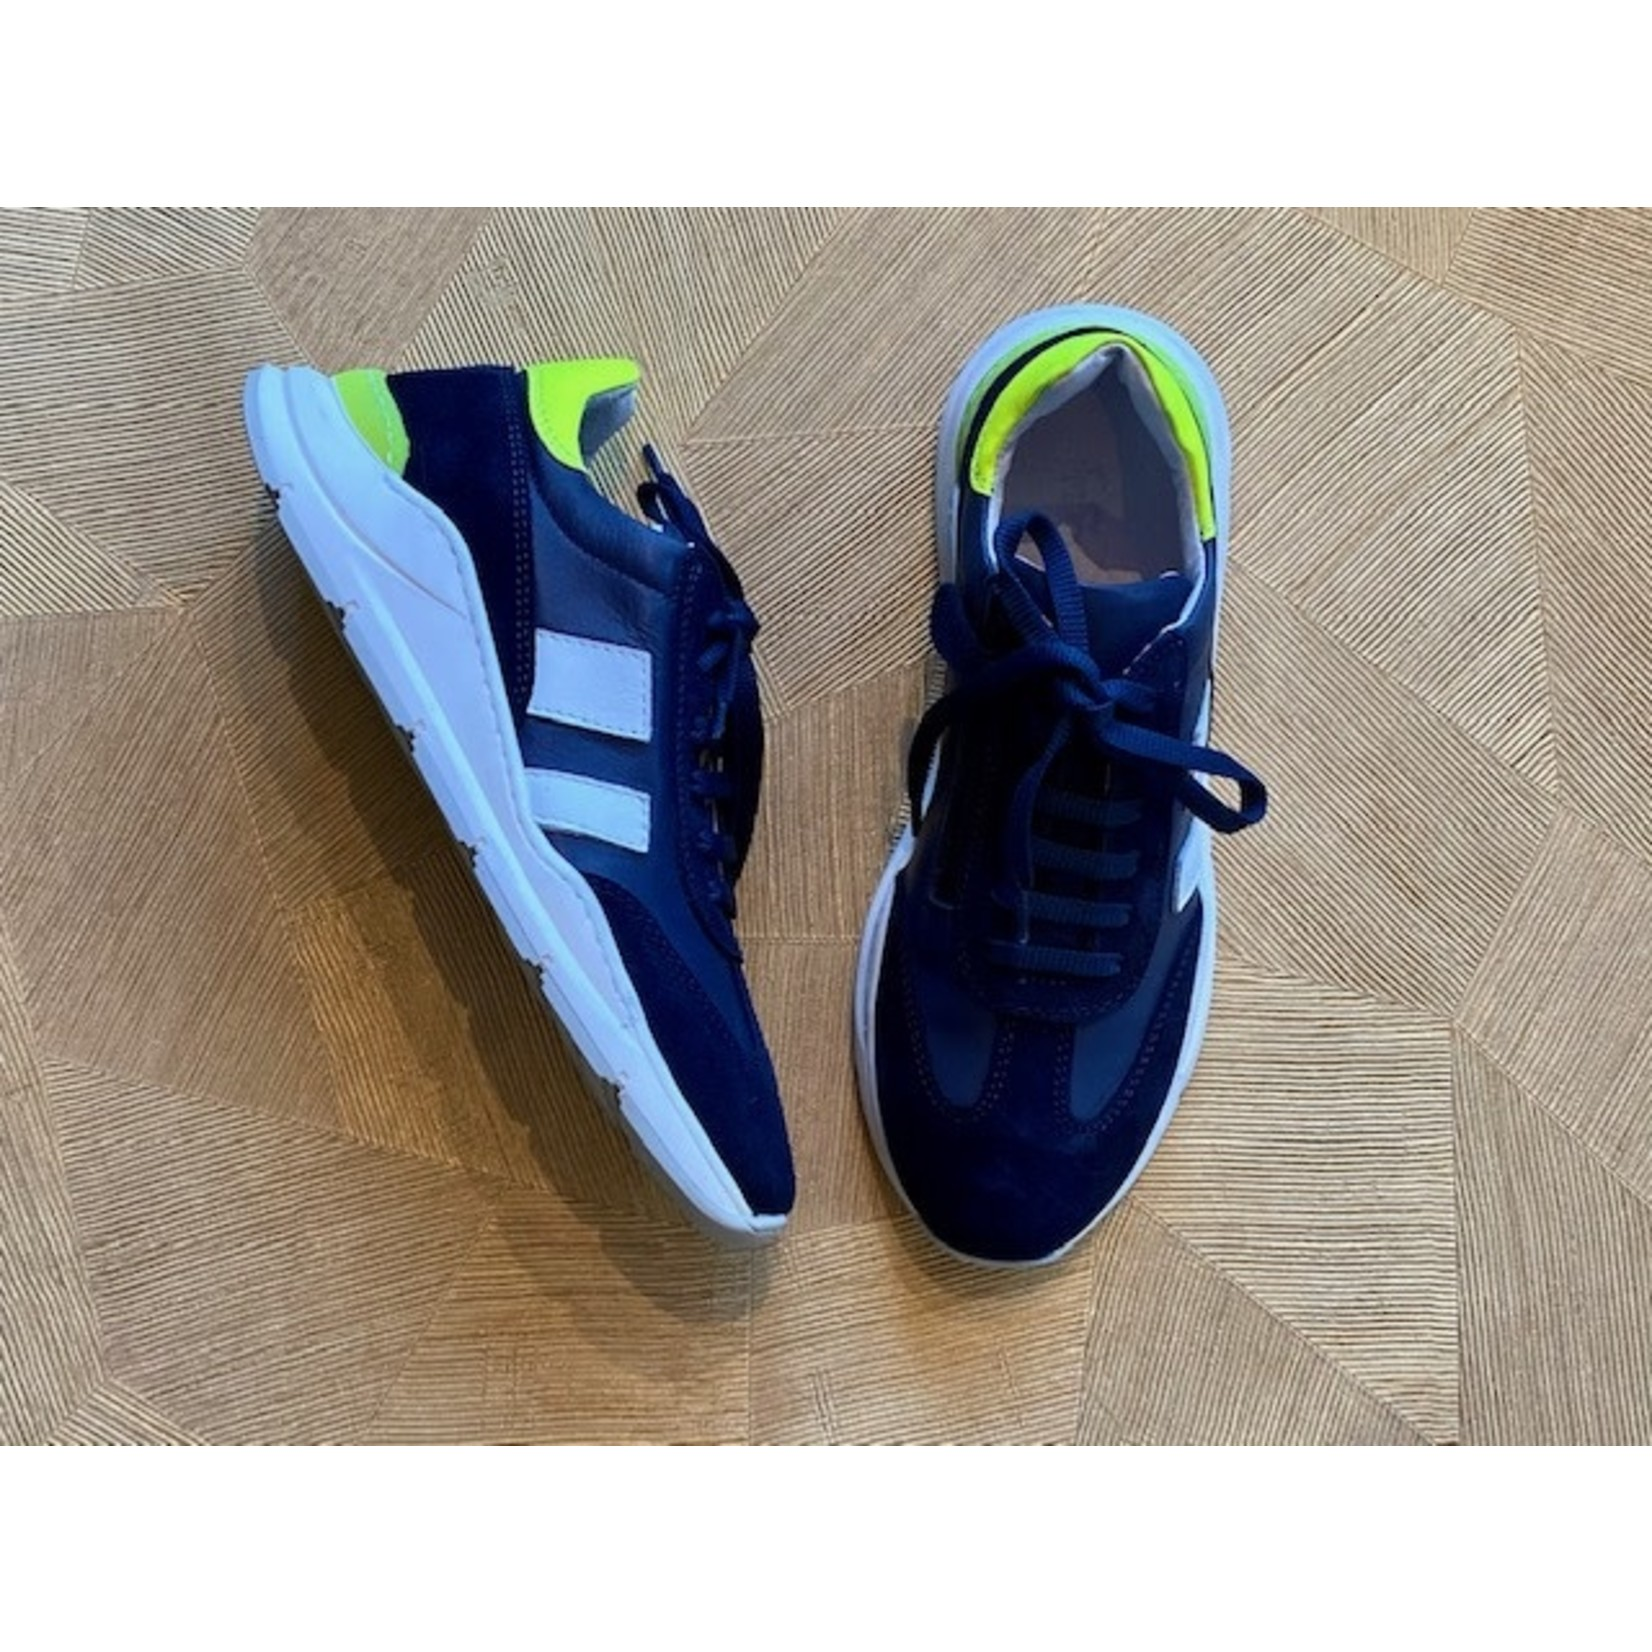 FREESBY FREESBY outlet runner veter en rits NAVY/yellow